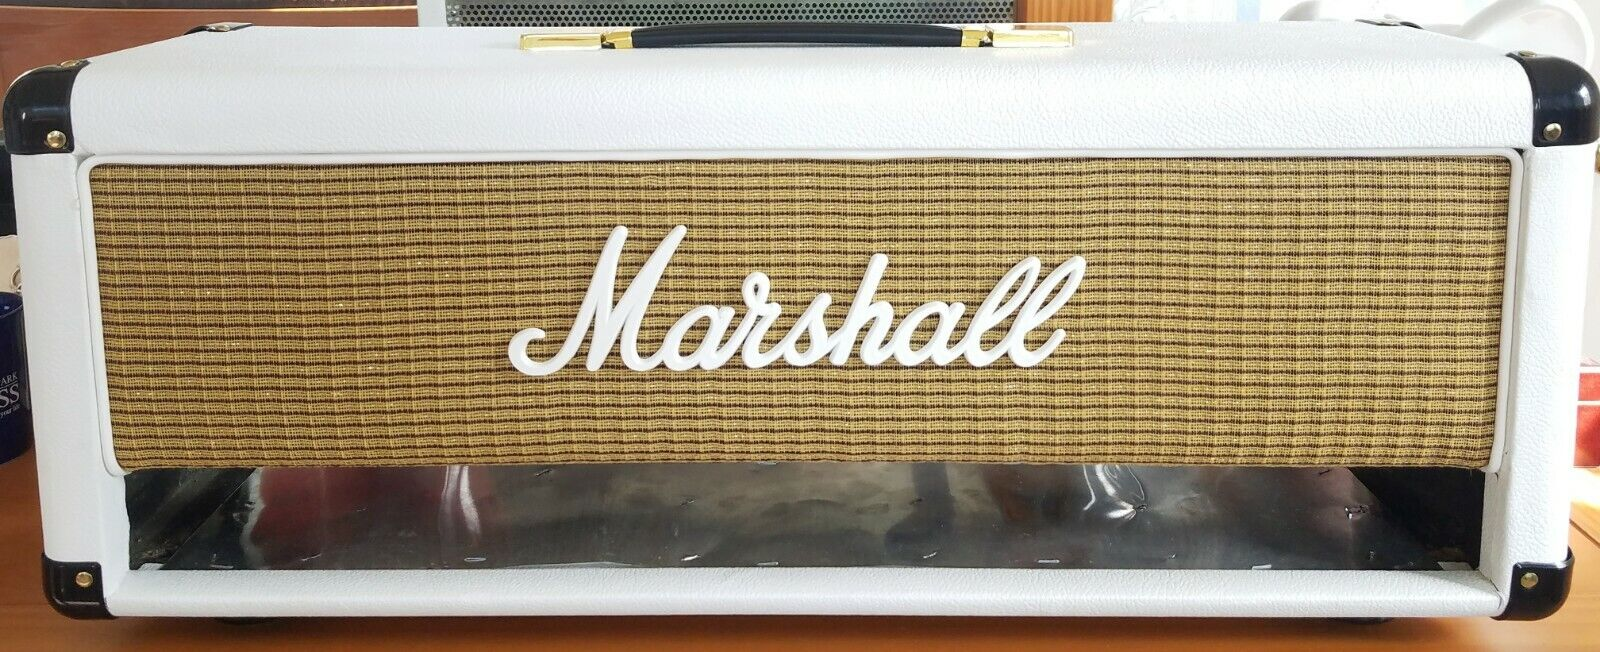 Marshall JCM 800 900 2000 Empty Head Shell. Buy it now for 350.00